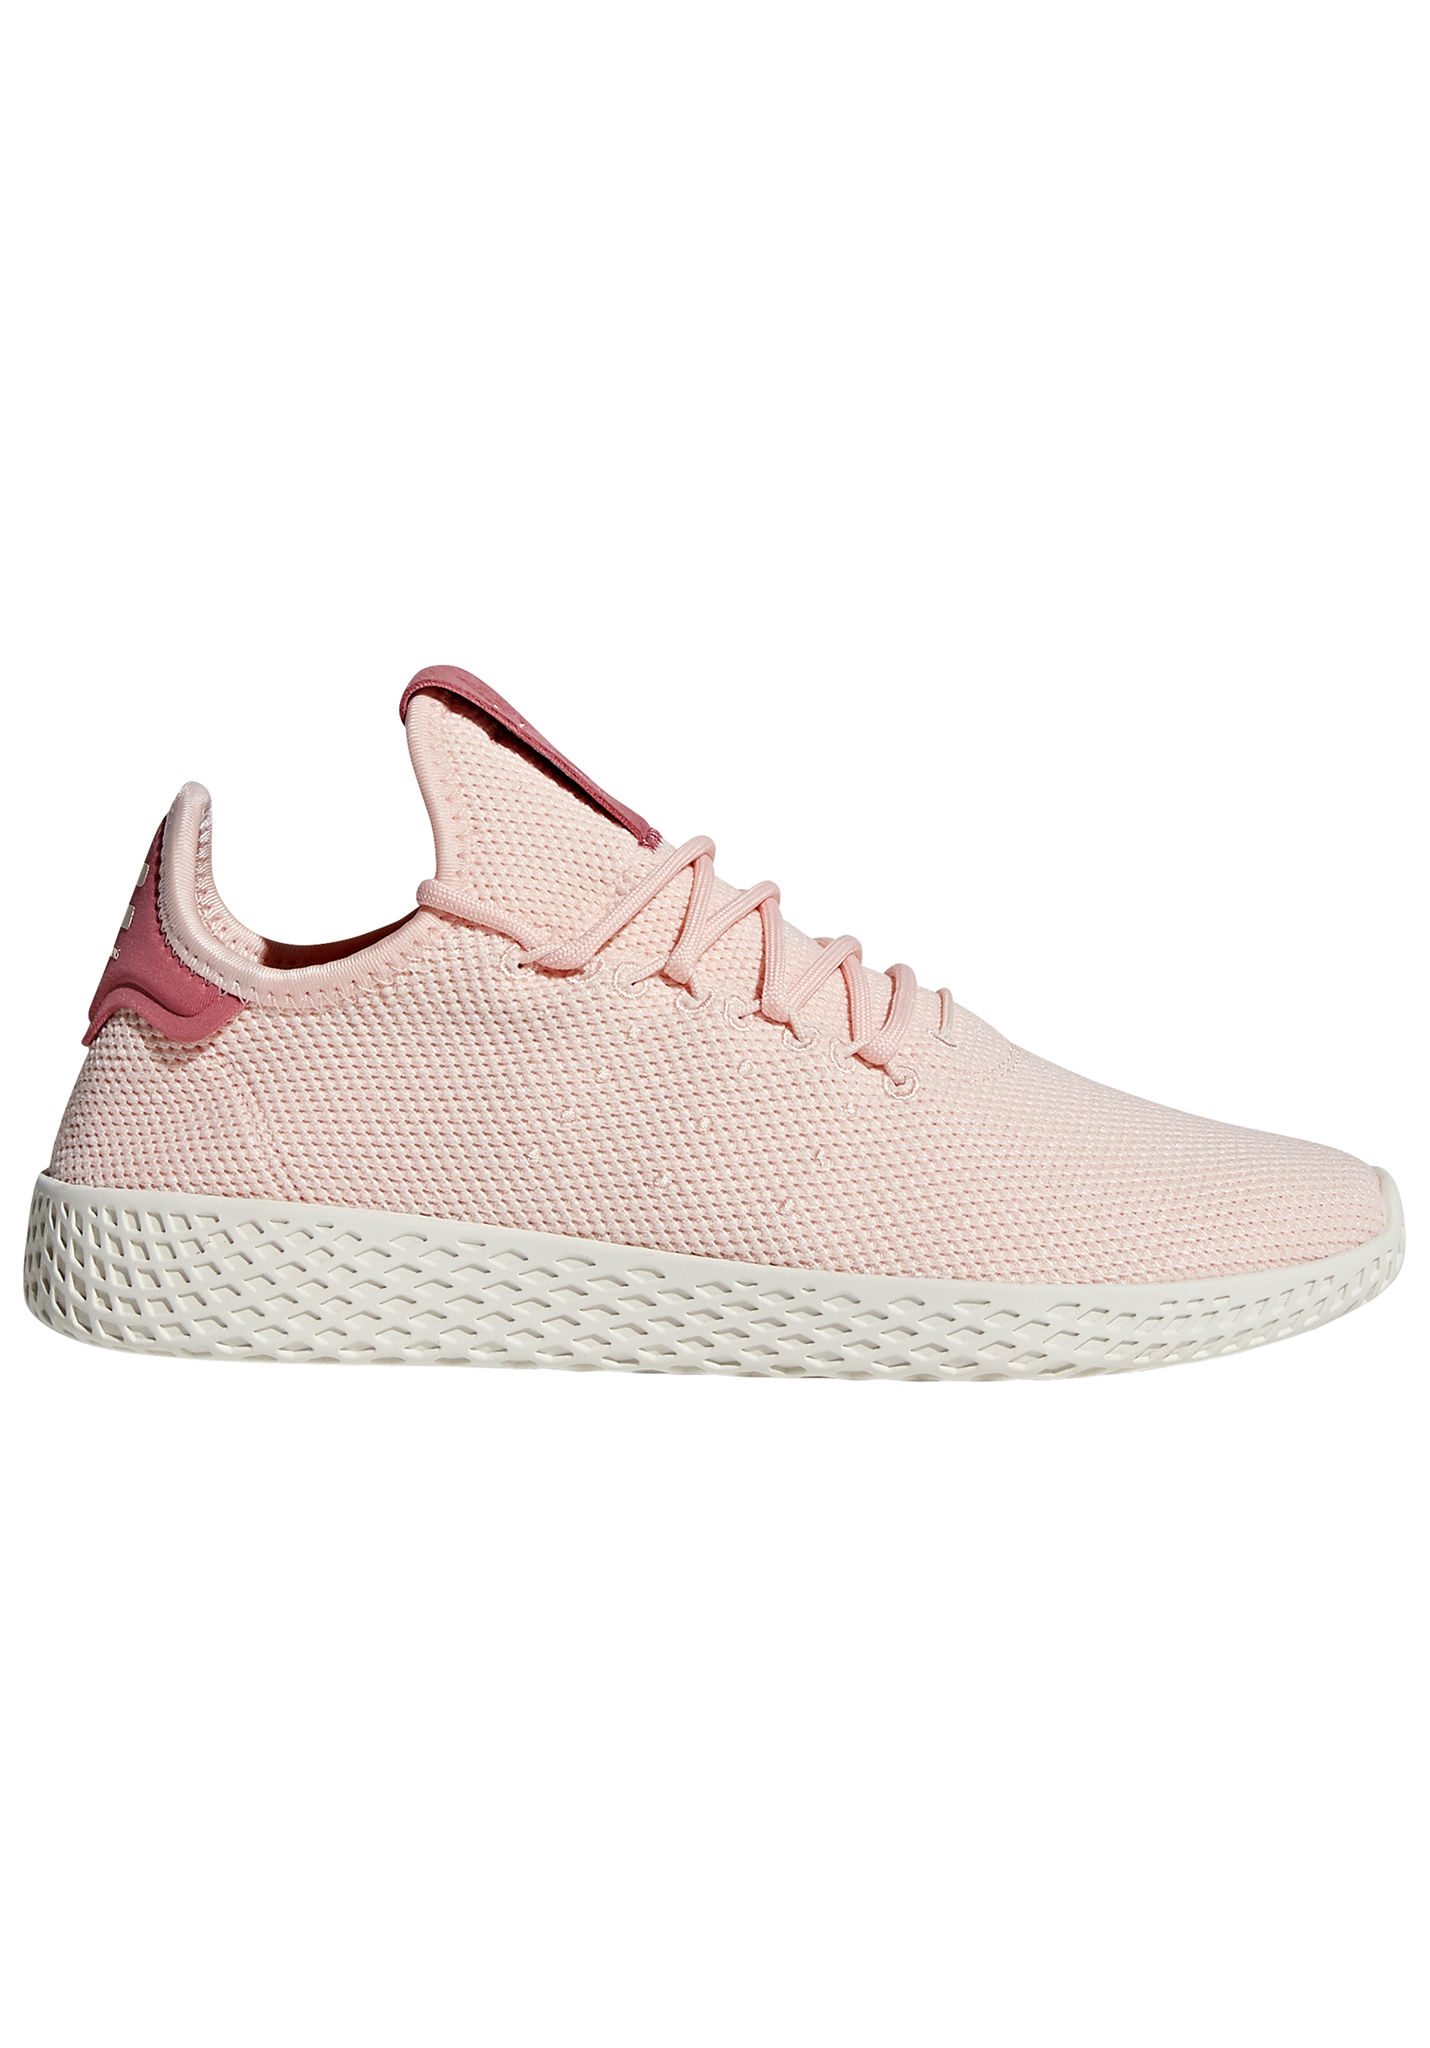 adidas Originals Pharrell Williams Tennis Hu - Sneaker für Damen - Pink